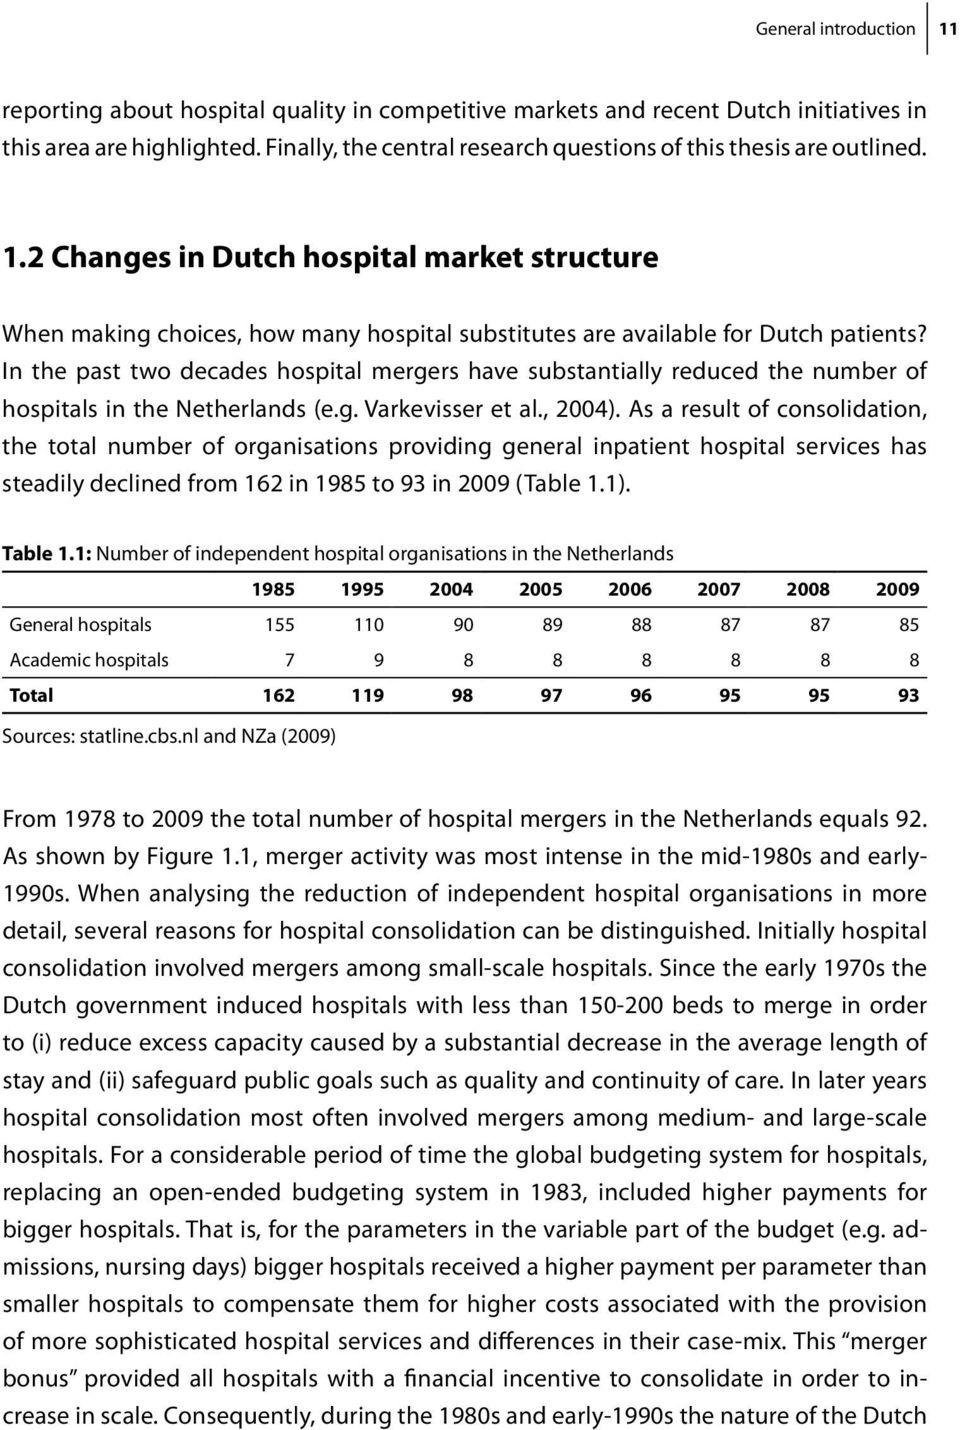 In the past two decades hospital mergers have substantially reduced the number of hospitals in the Netherlands (e.g. Varkevisser et al., 2004).